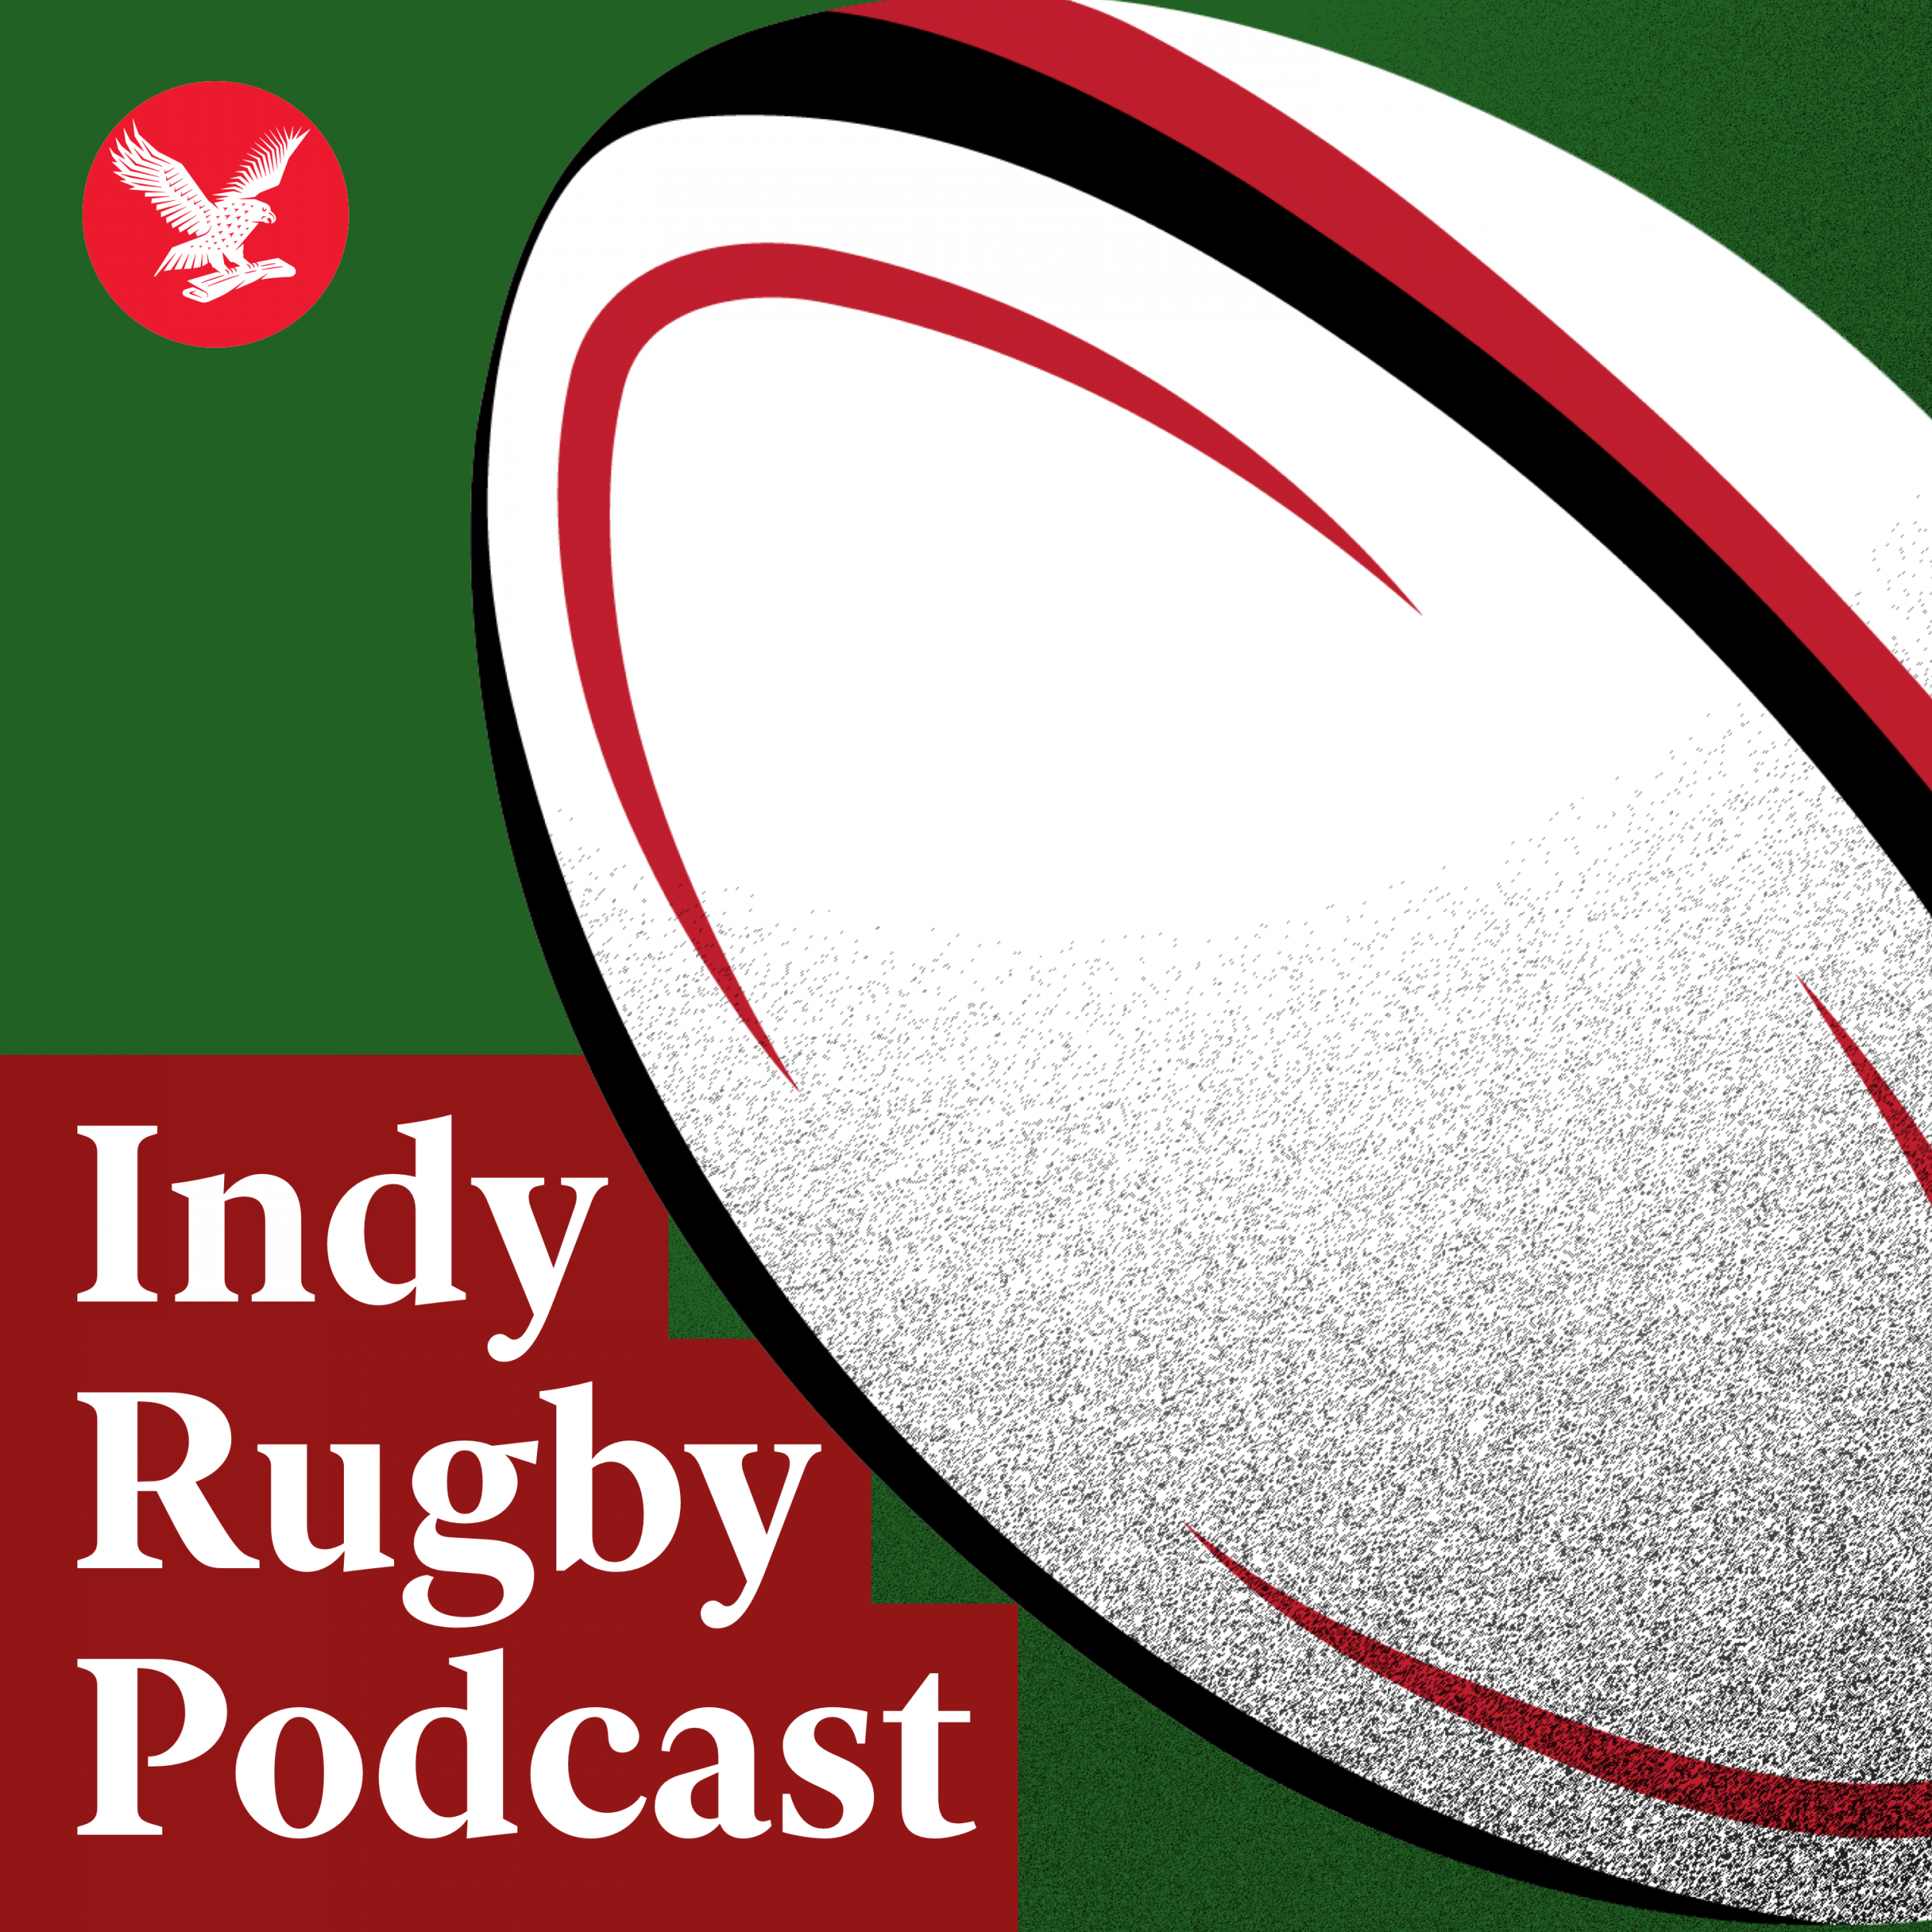 The Indy Rugby Podcast: Is this the greatest weekend of World Cup quarter-finals ever?